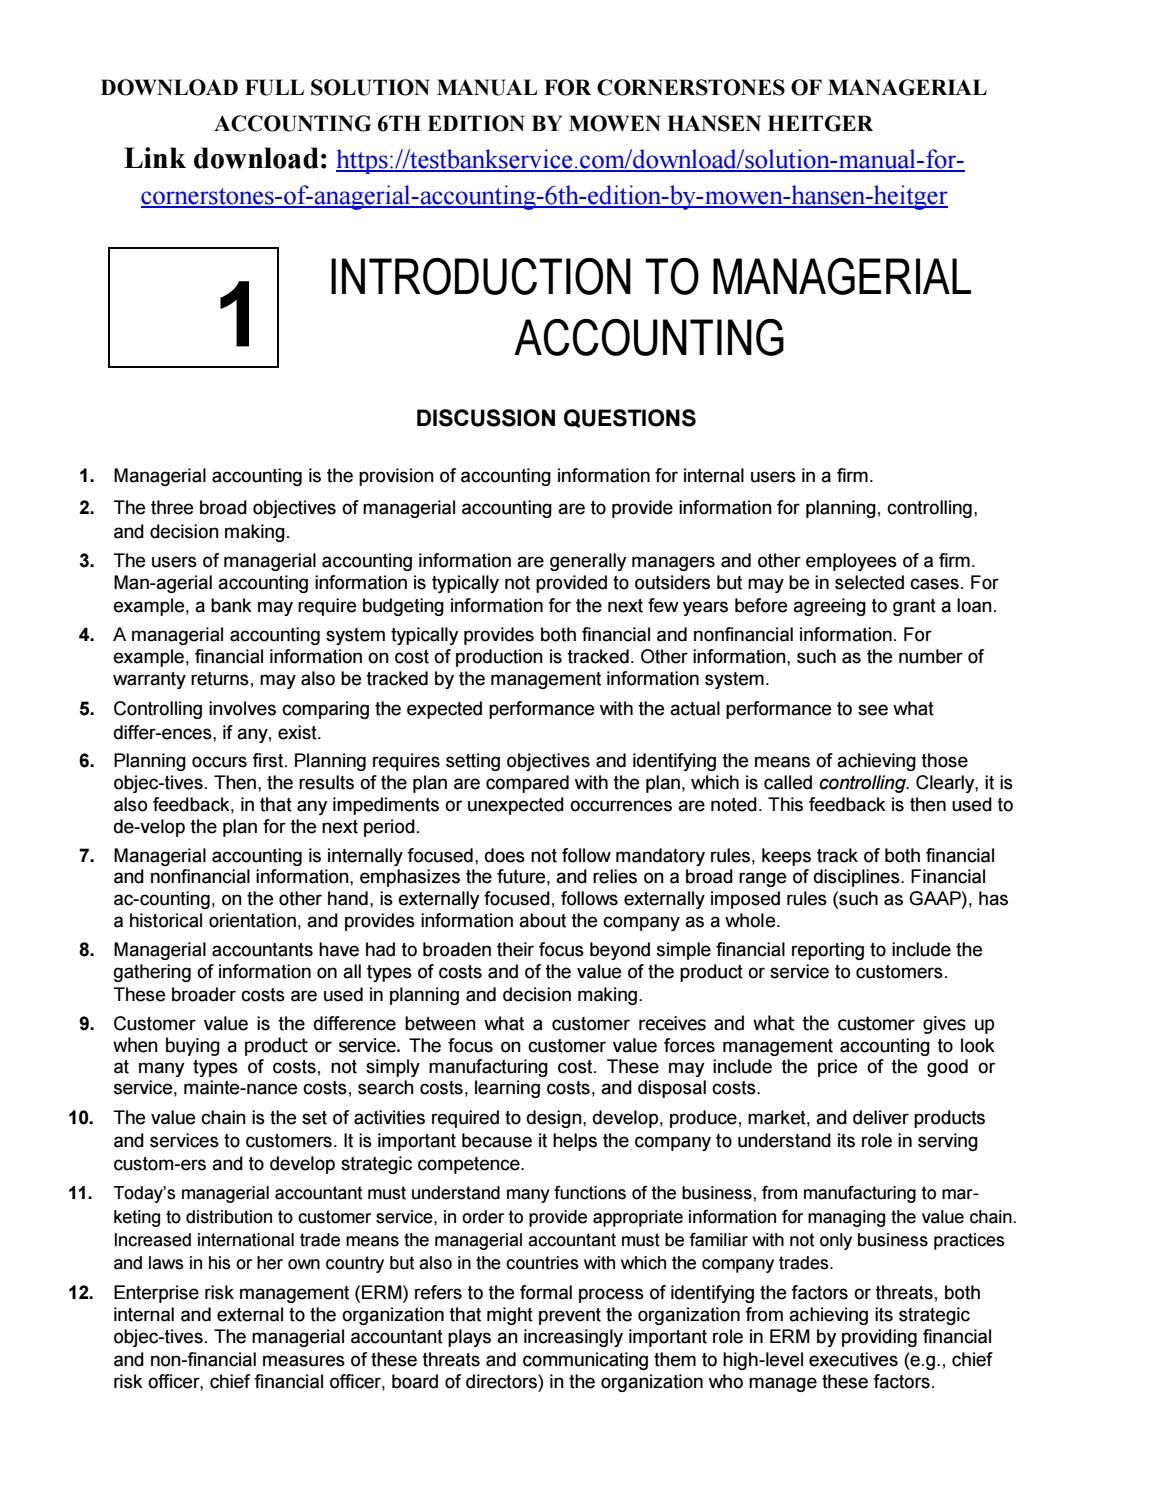 Solution Manual for Cornerstones of Managerial Accounting 6th Edition by  Mowen Hansen Heitger